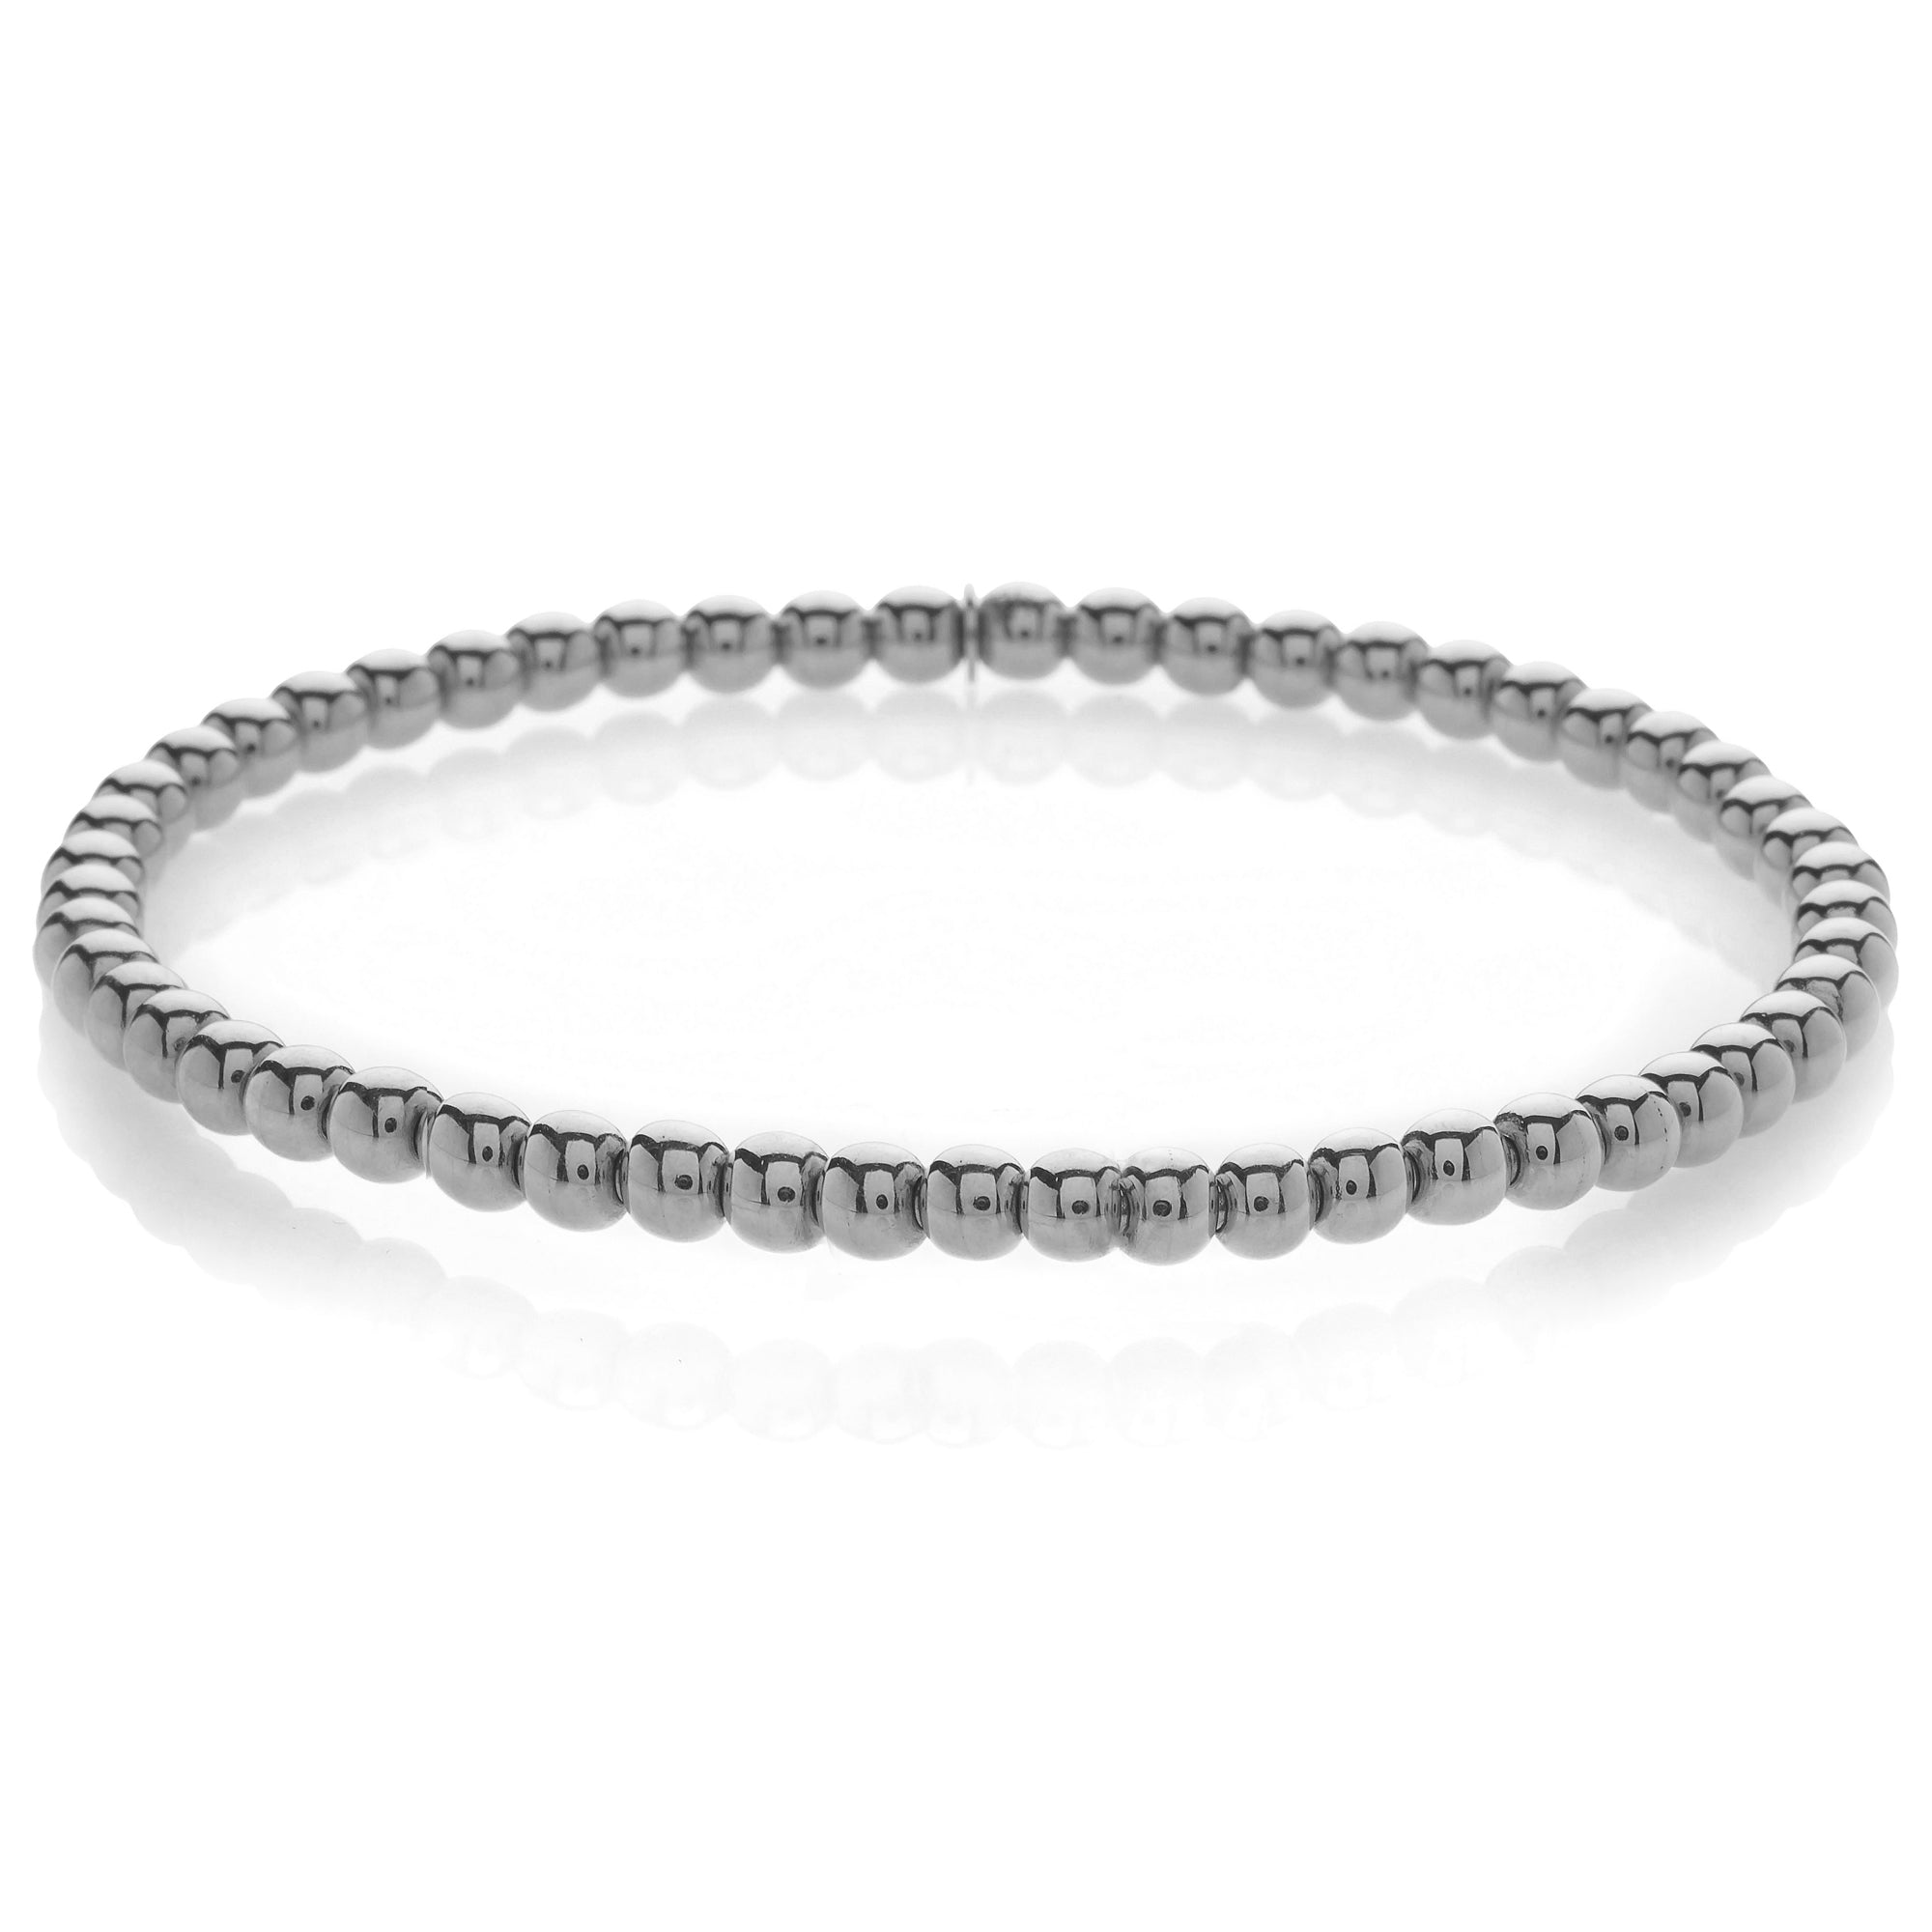 Hulchi Belluni Plain 18K White Gold Stretch Stackable Bracelet 20341M-W